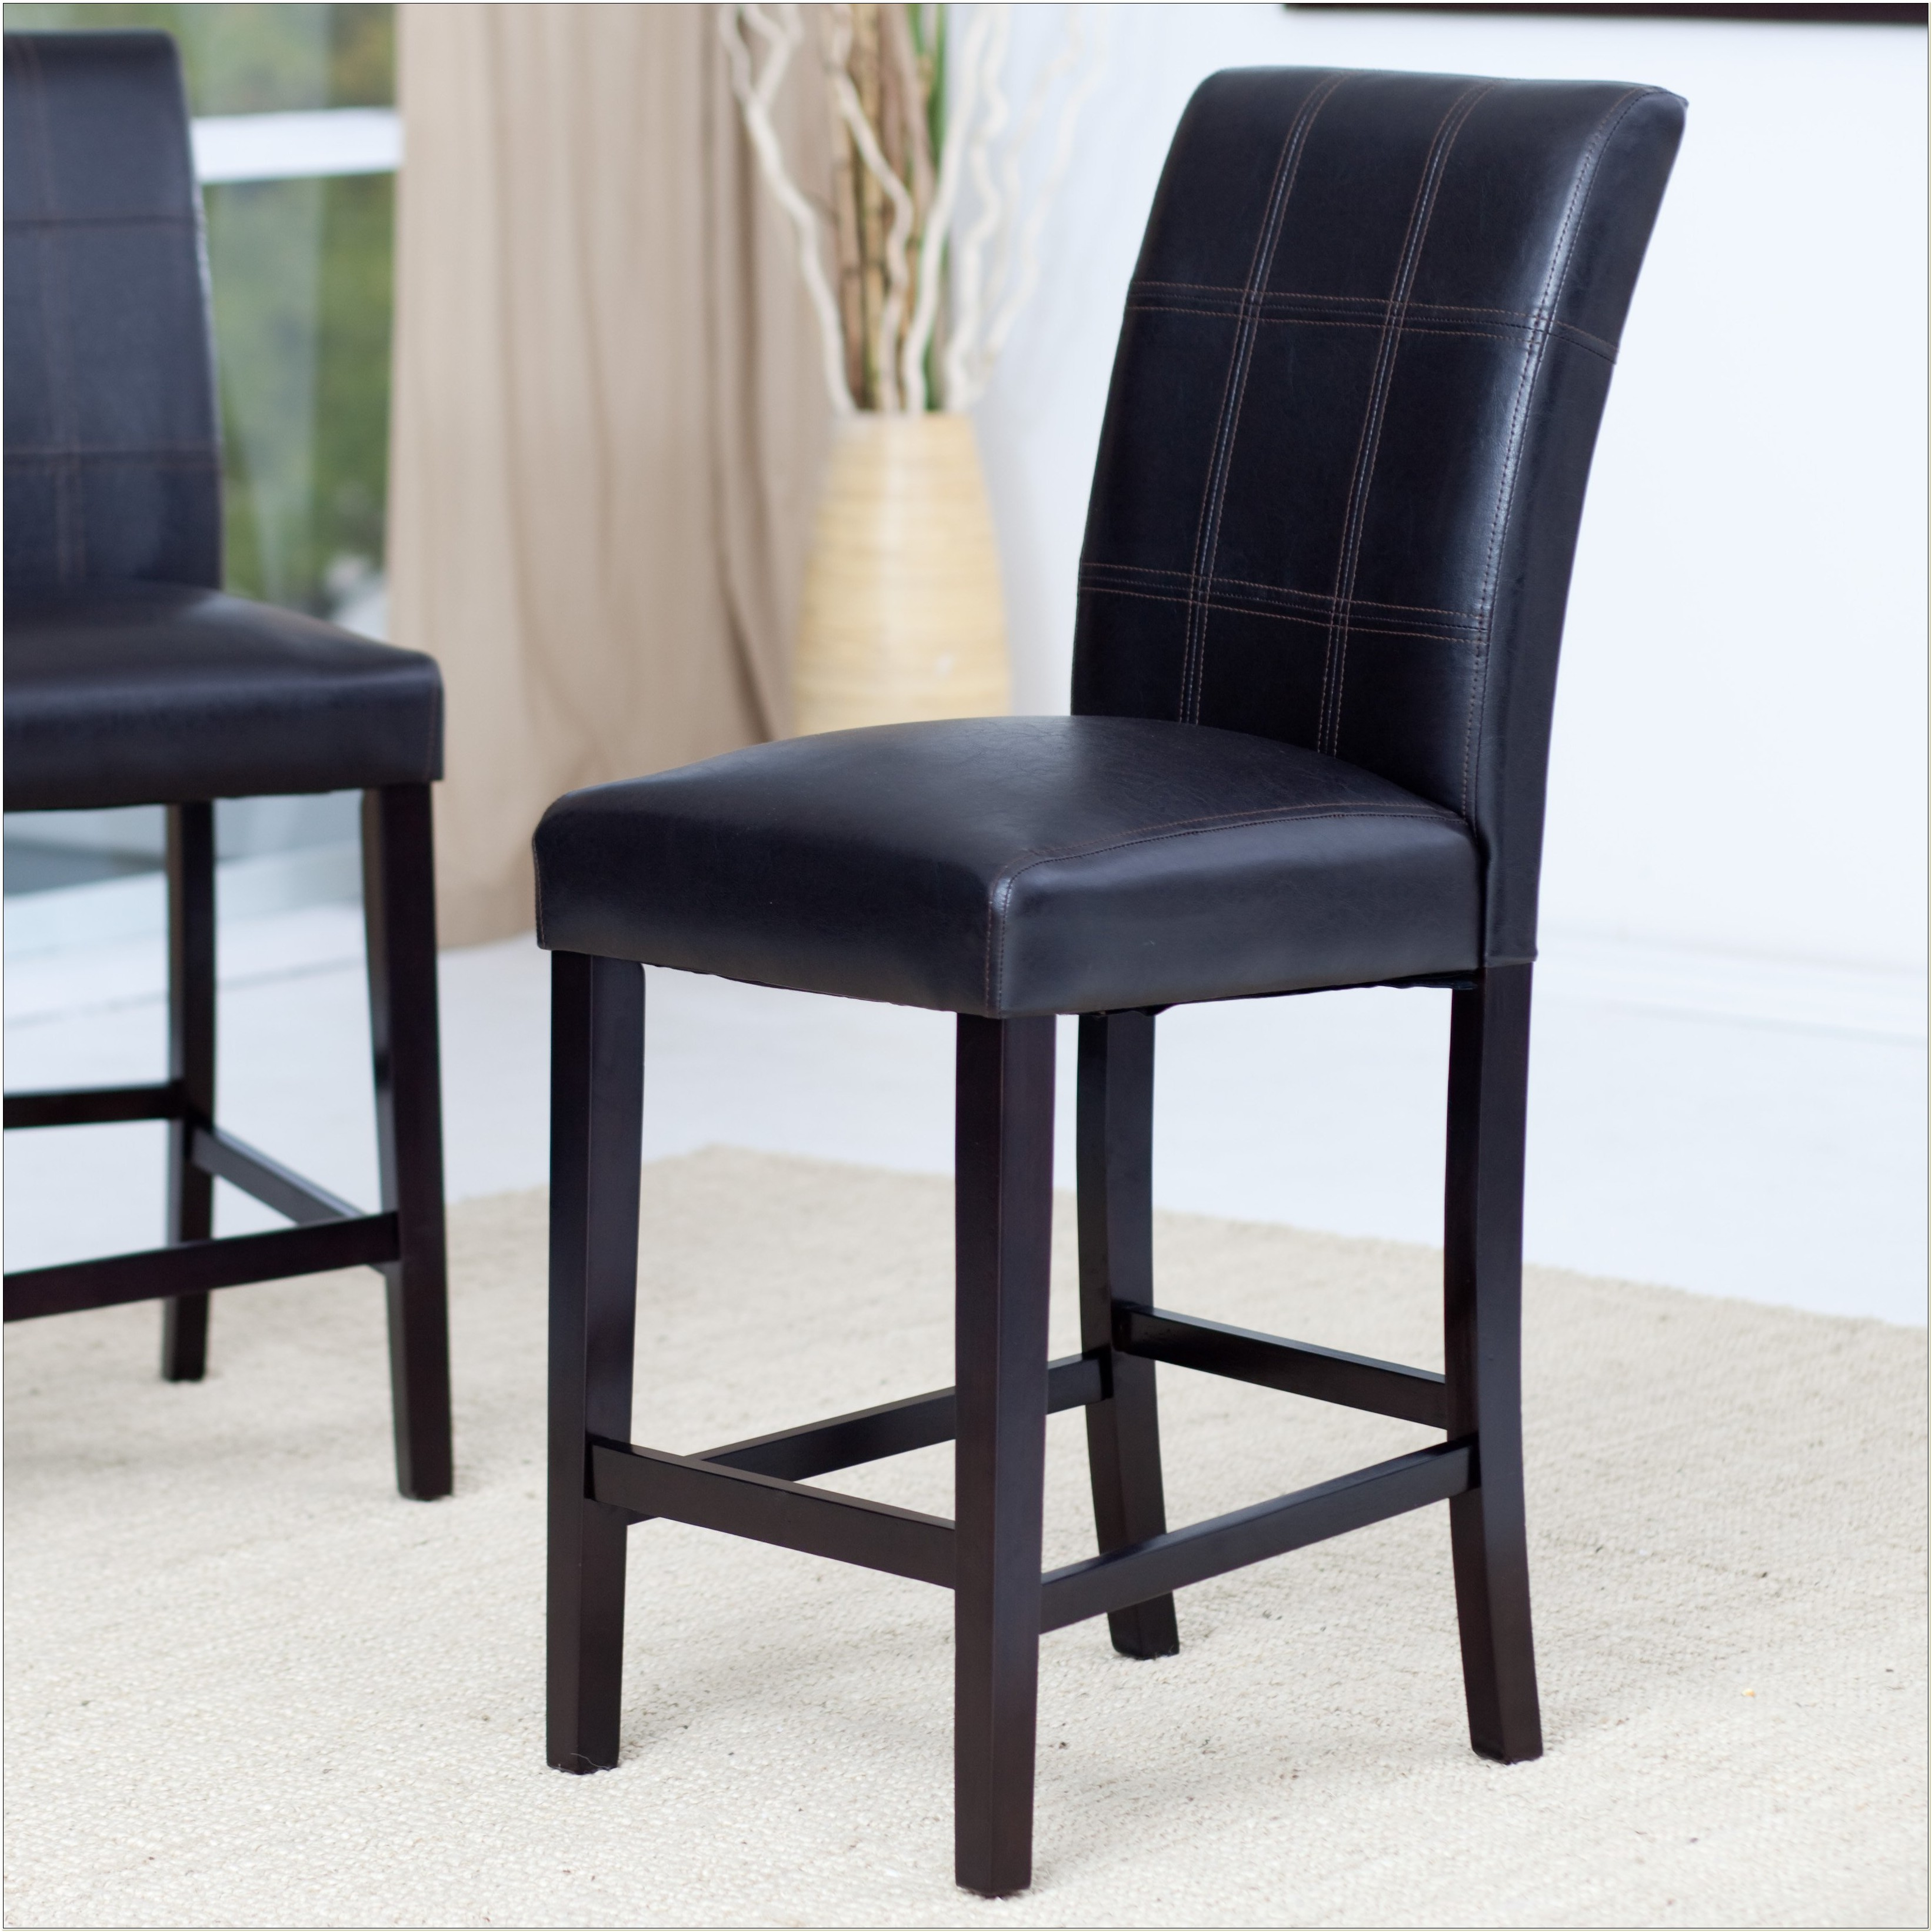 26 Inch High Counter Stools